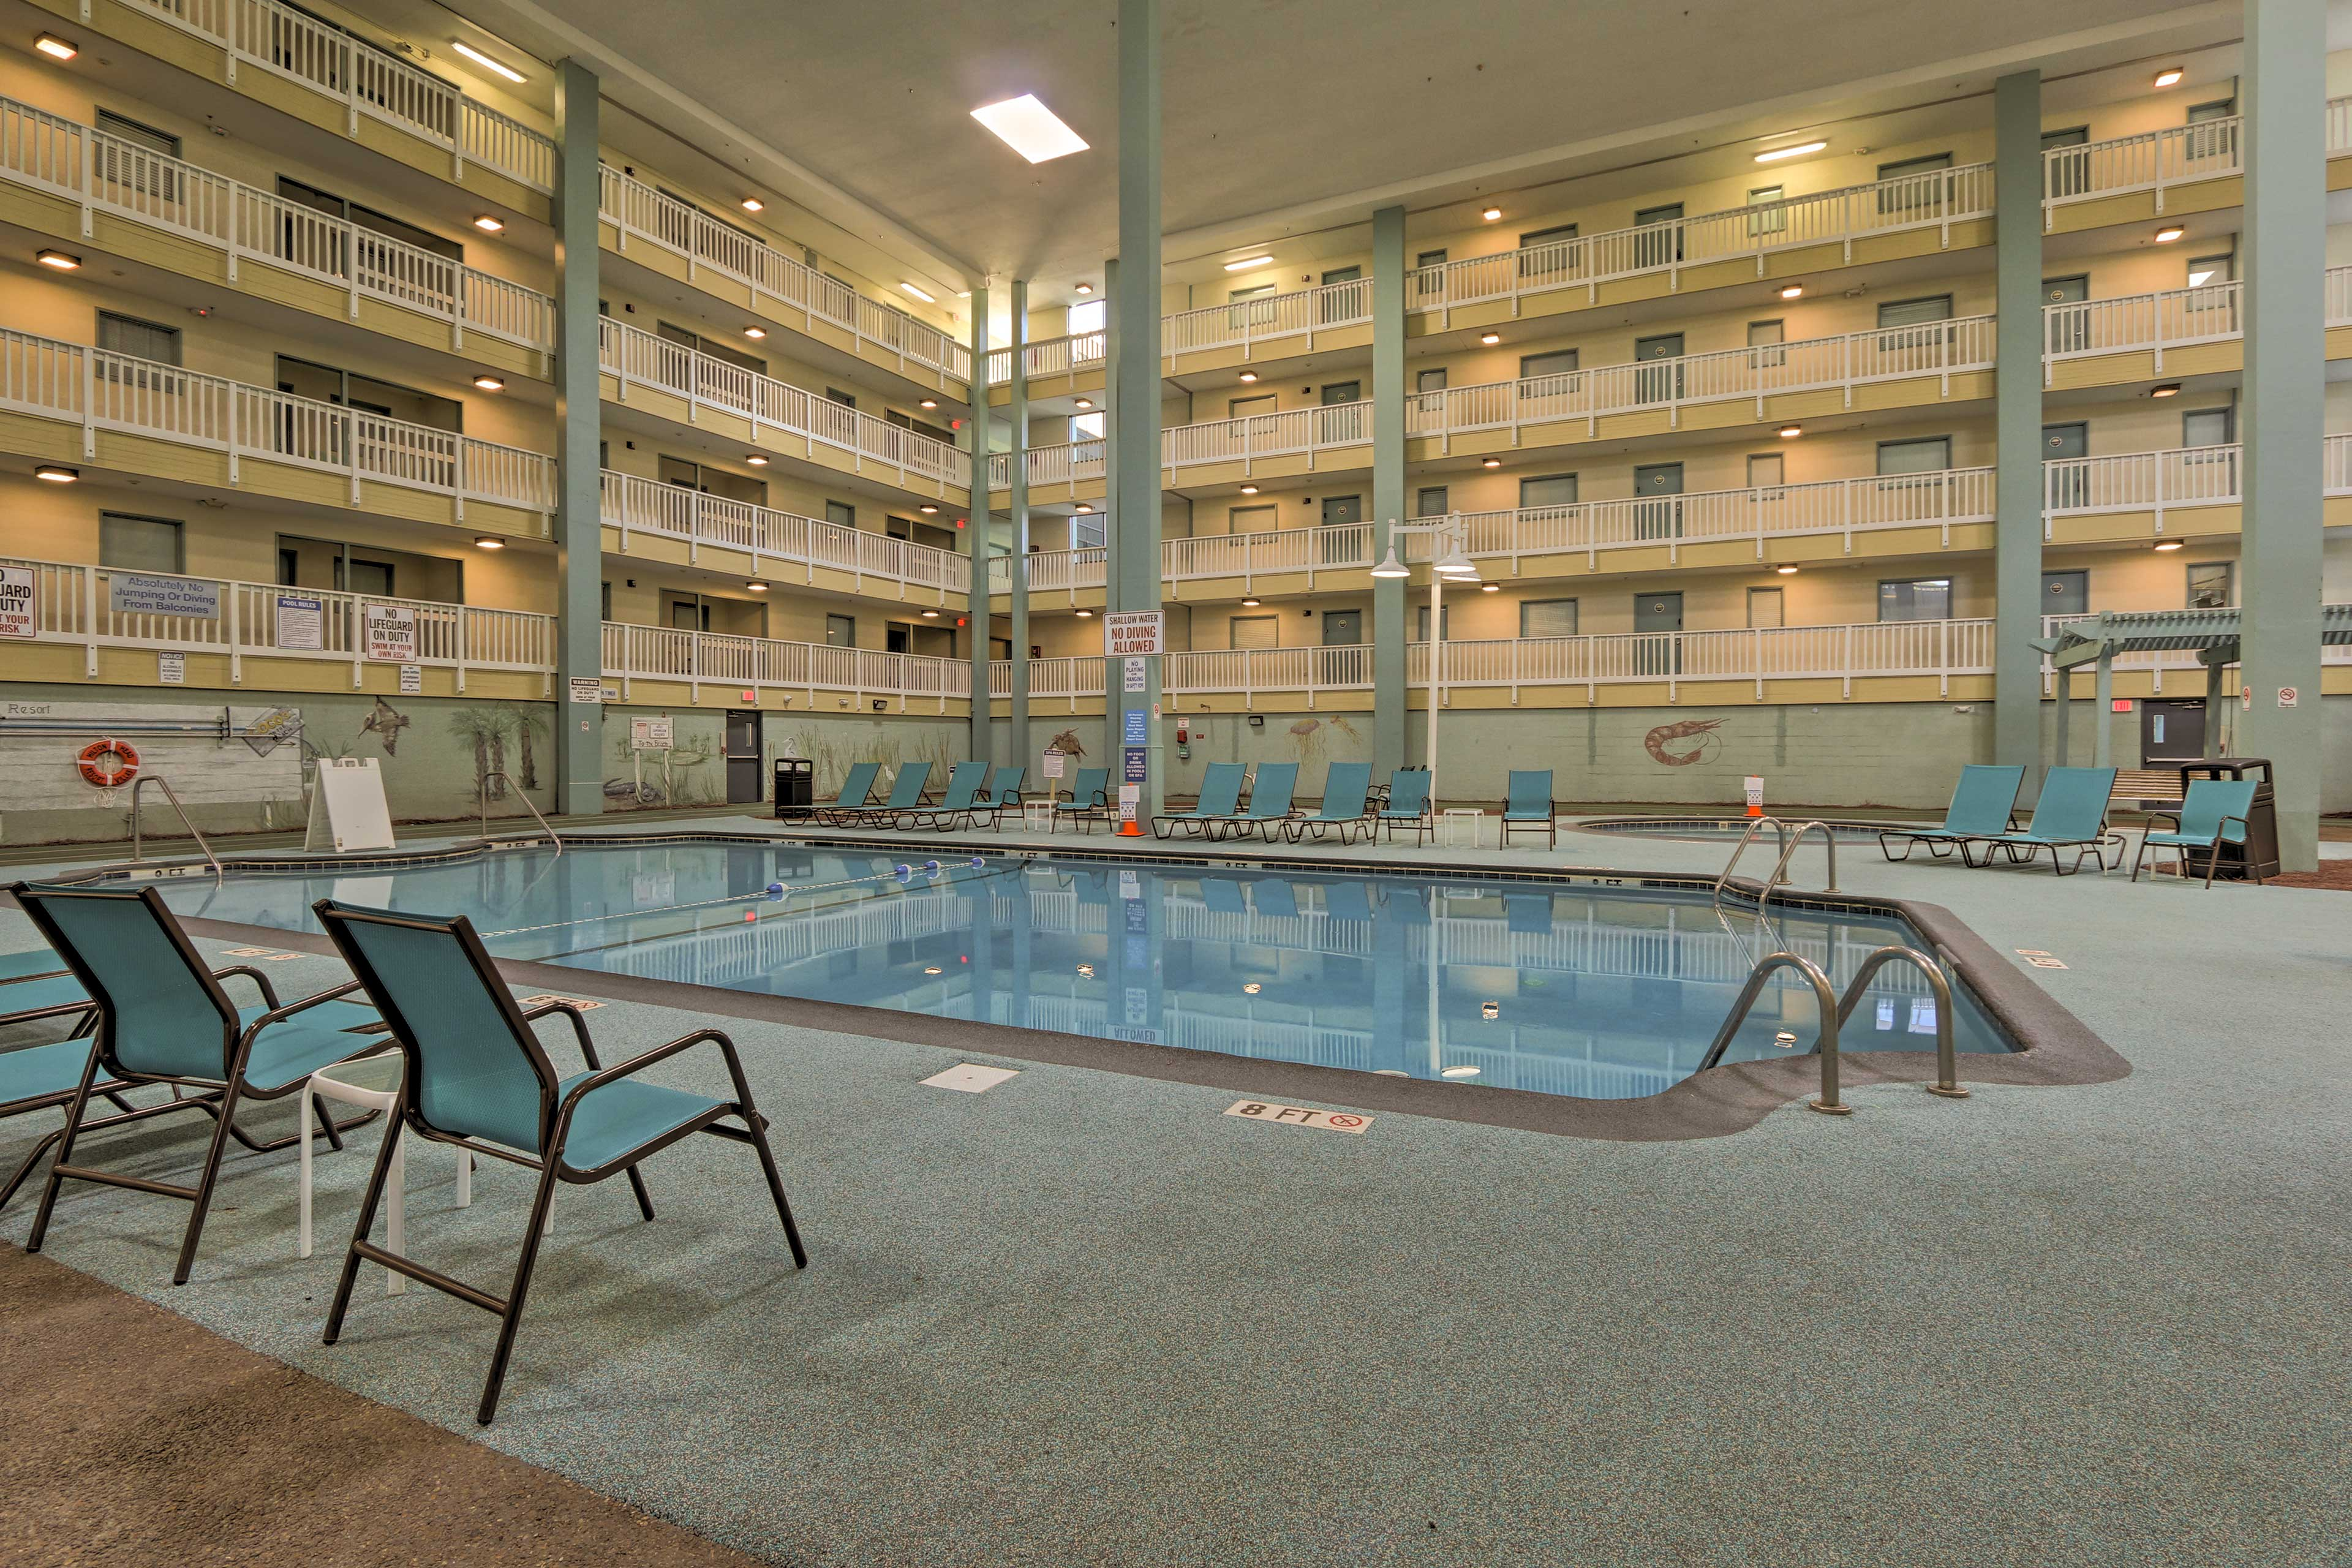 The condo is situated in a complex with both indoor and outdoor amenities!